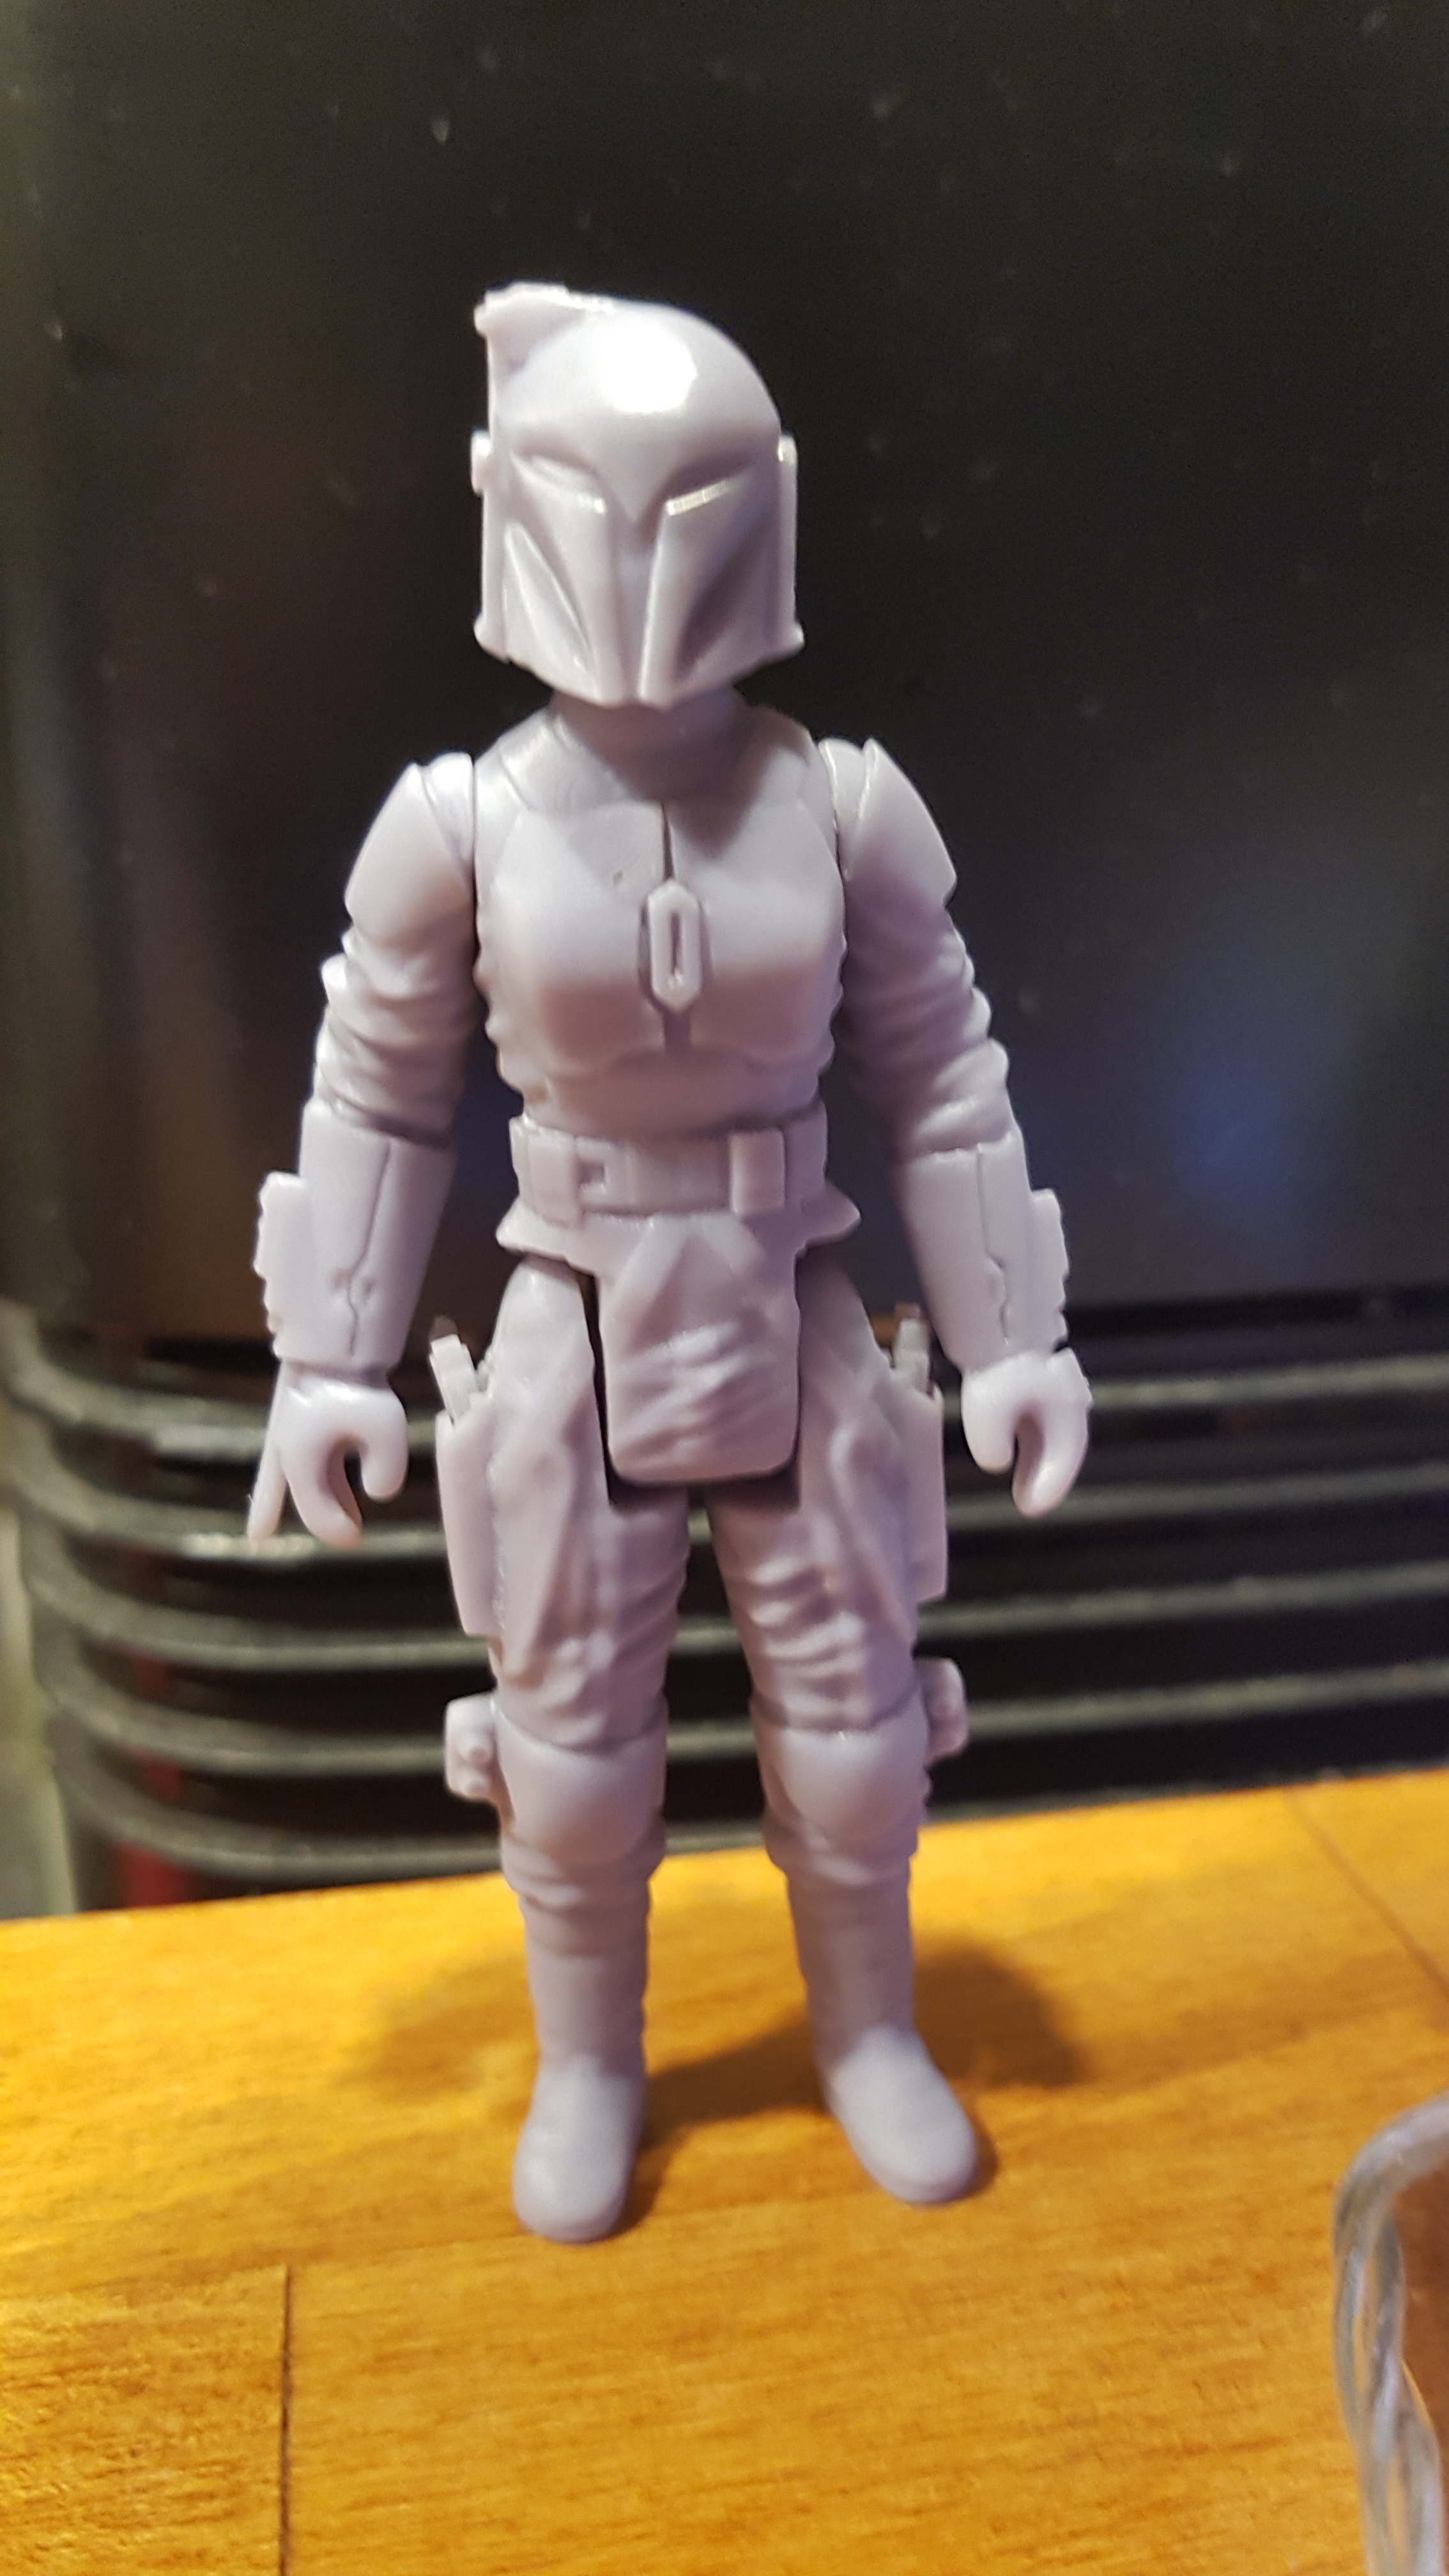 Download STL file STAR WARS.STL THE MANDALORIAN, Bo Katan and crew OBJ. KENNER STYLE ACTION FIGURE. • 3D print template, stabilobox